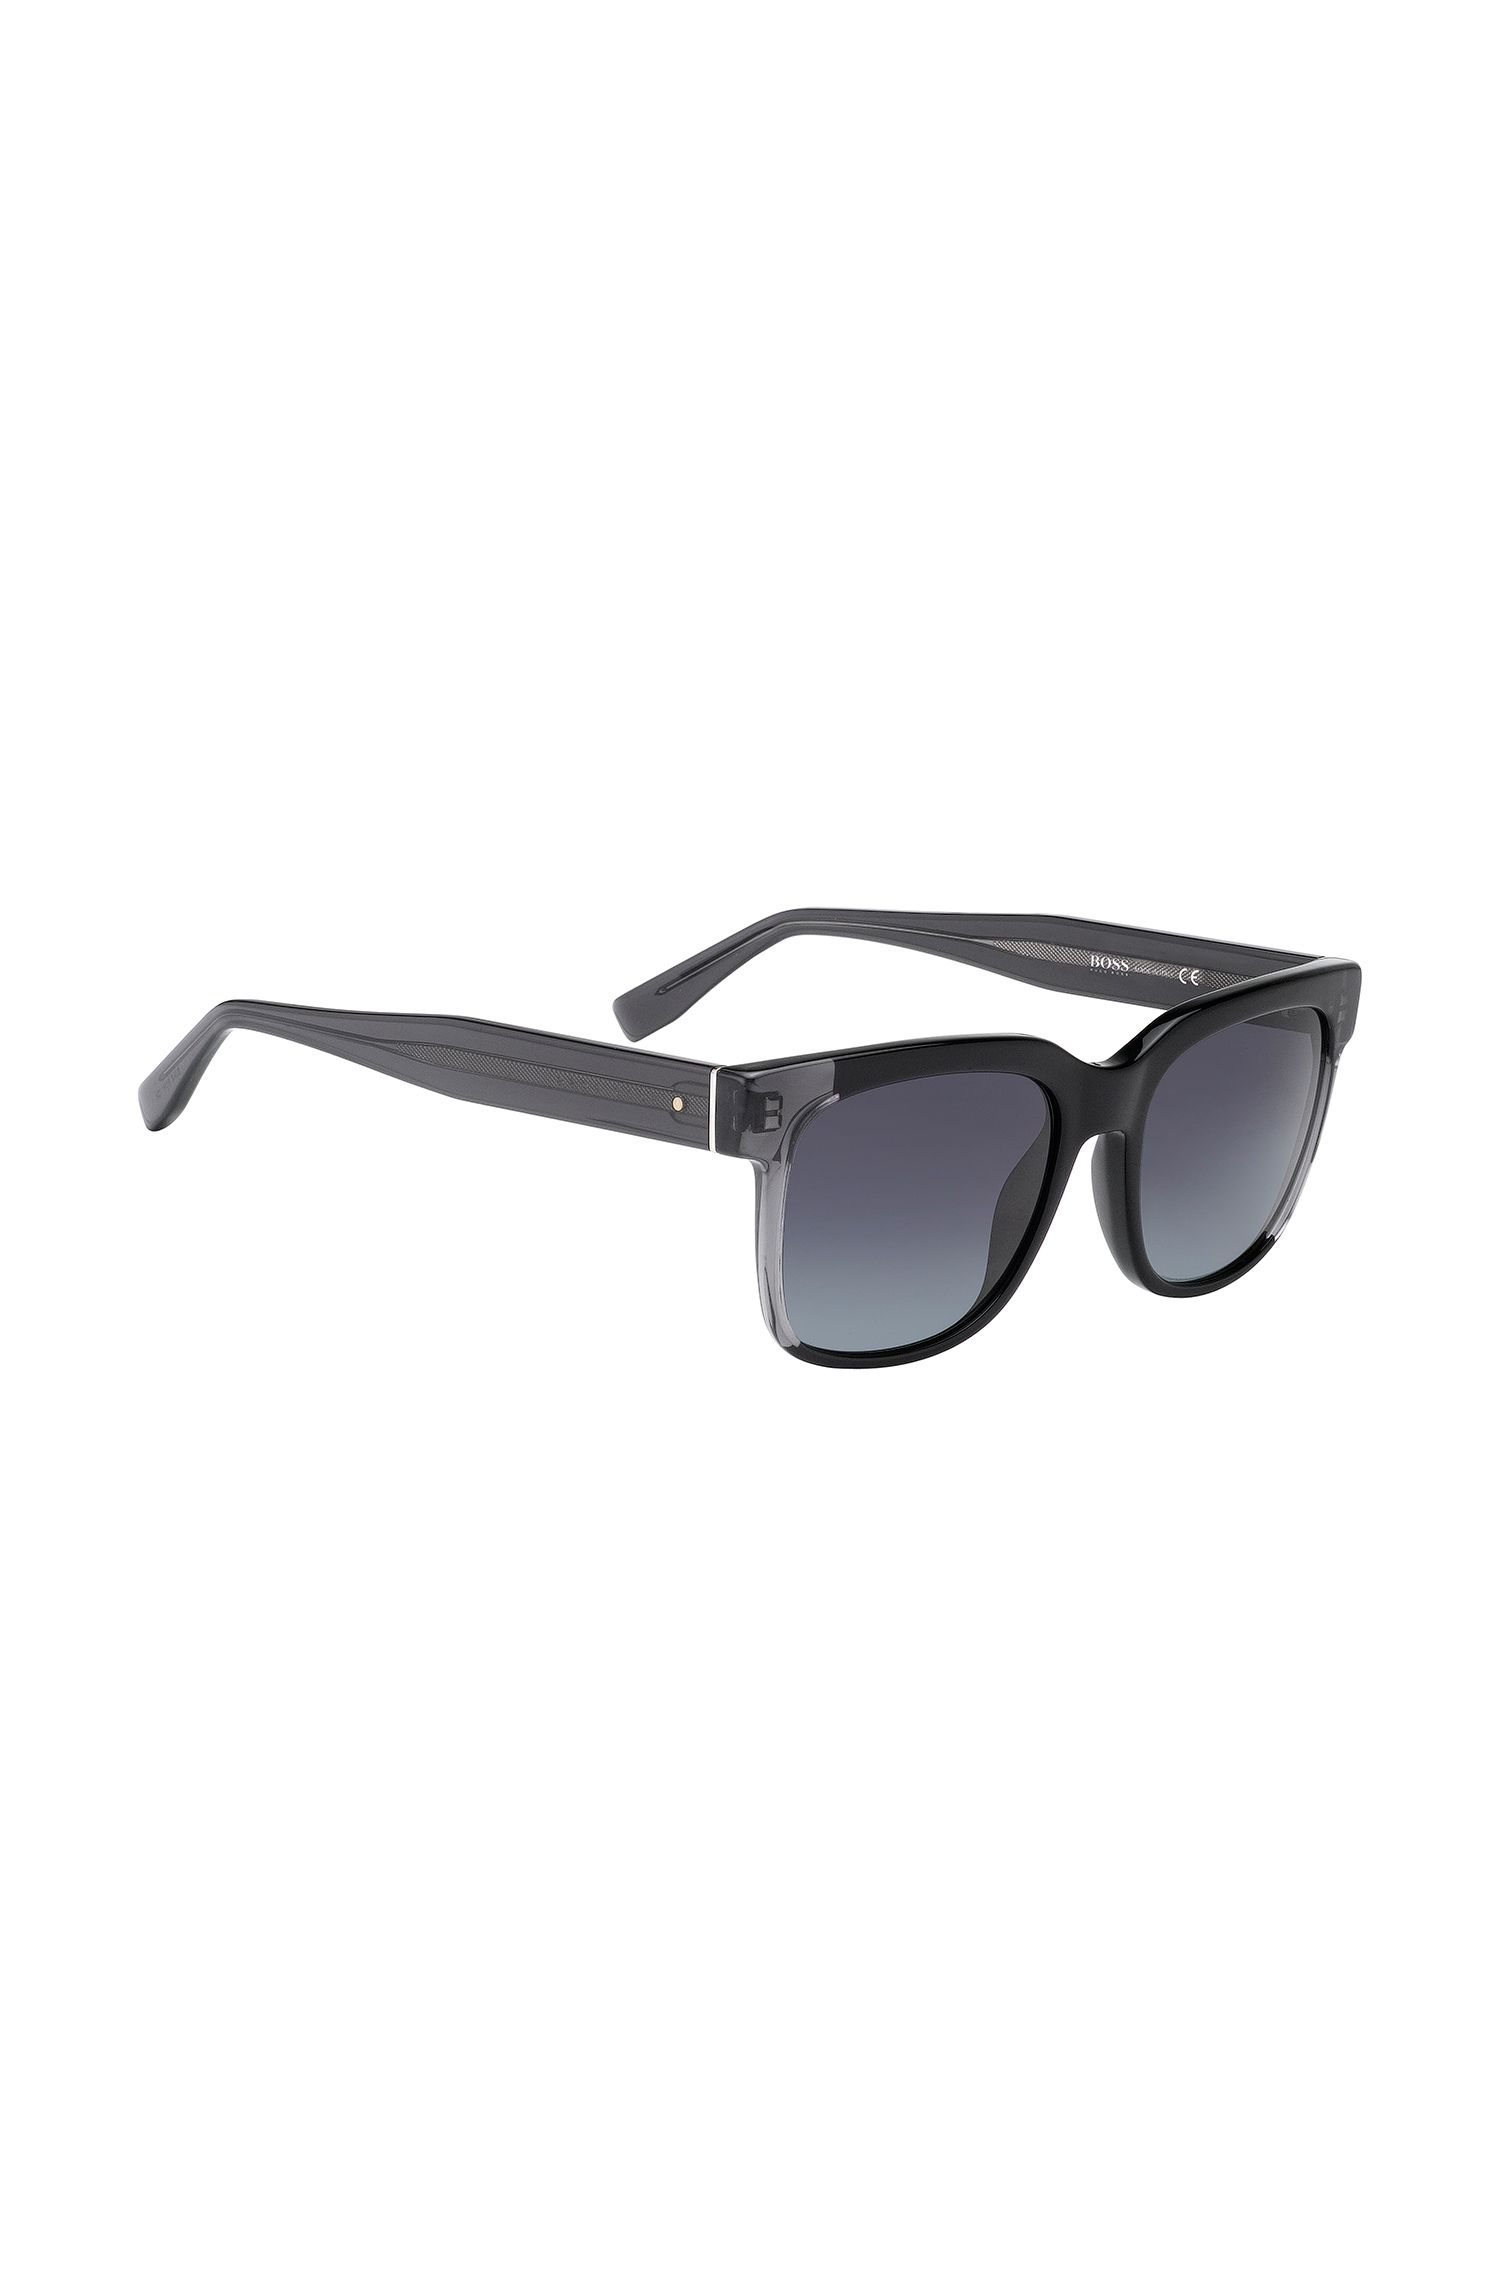 Sunglasses: 'BOSS 0735/S'